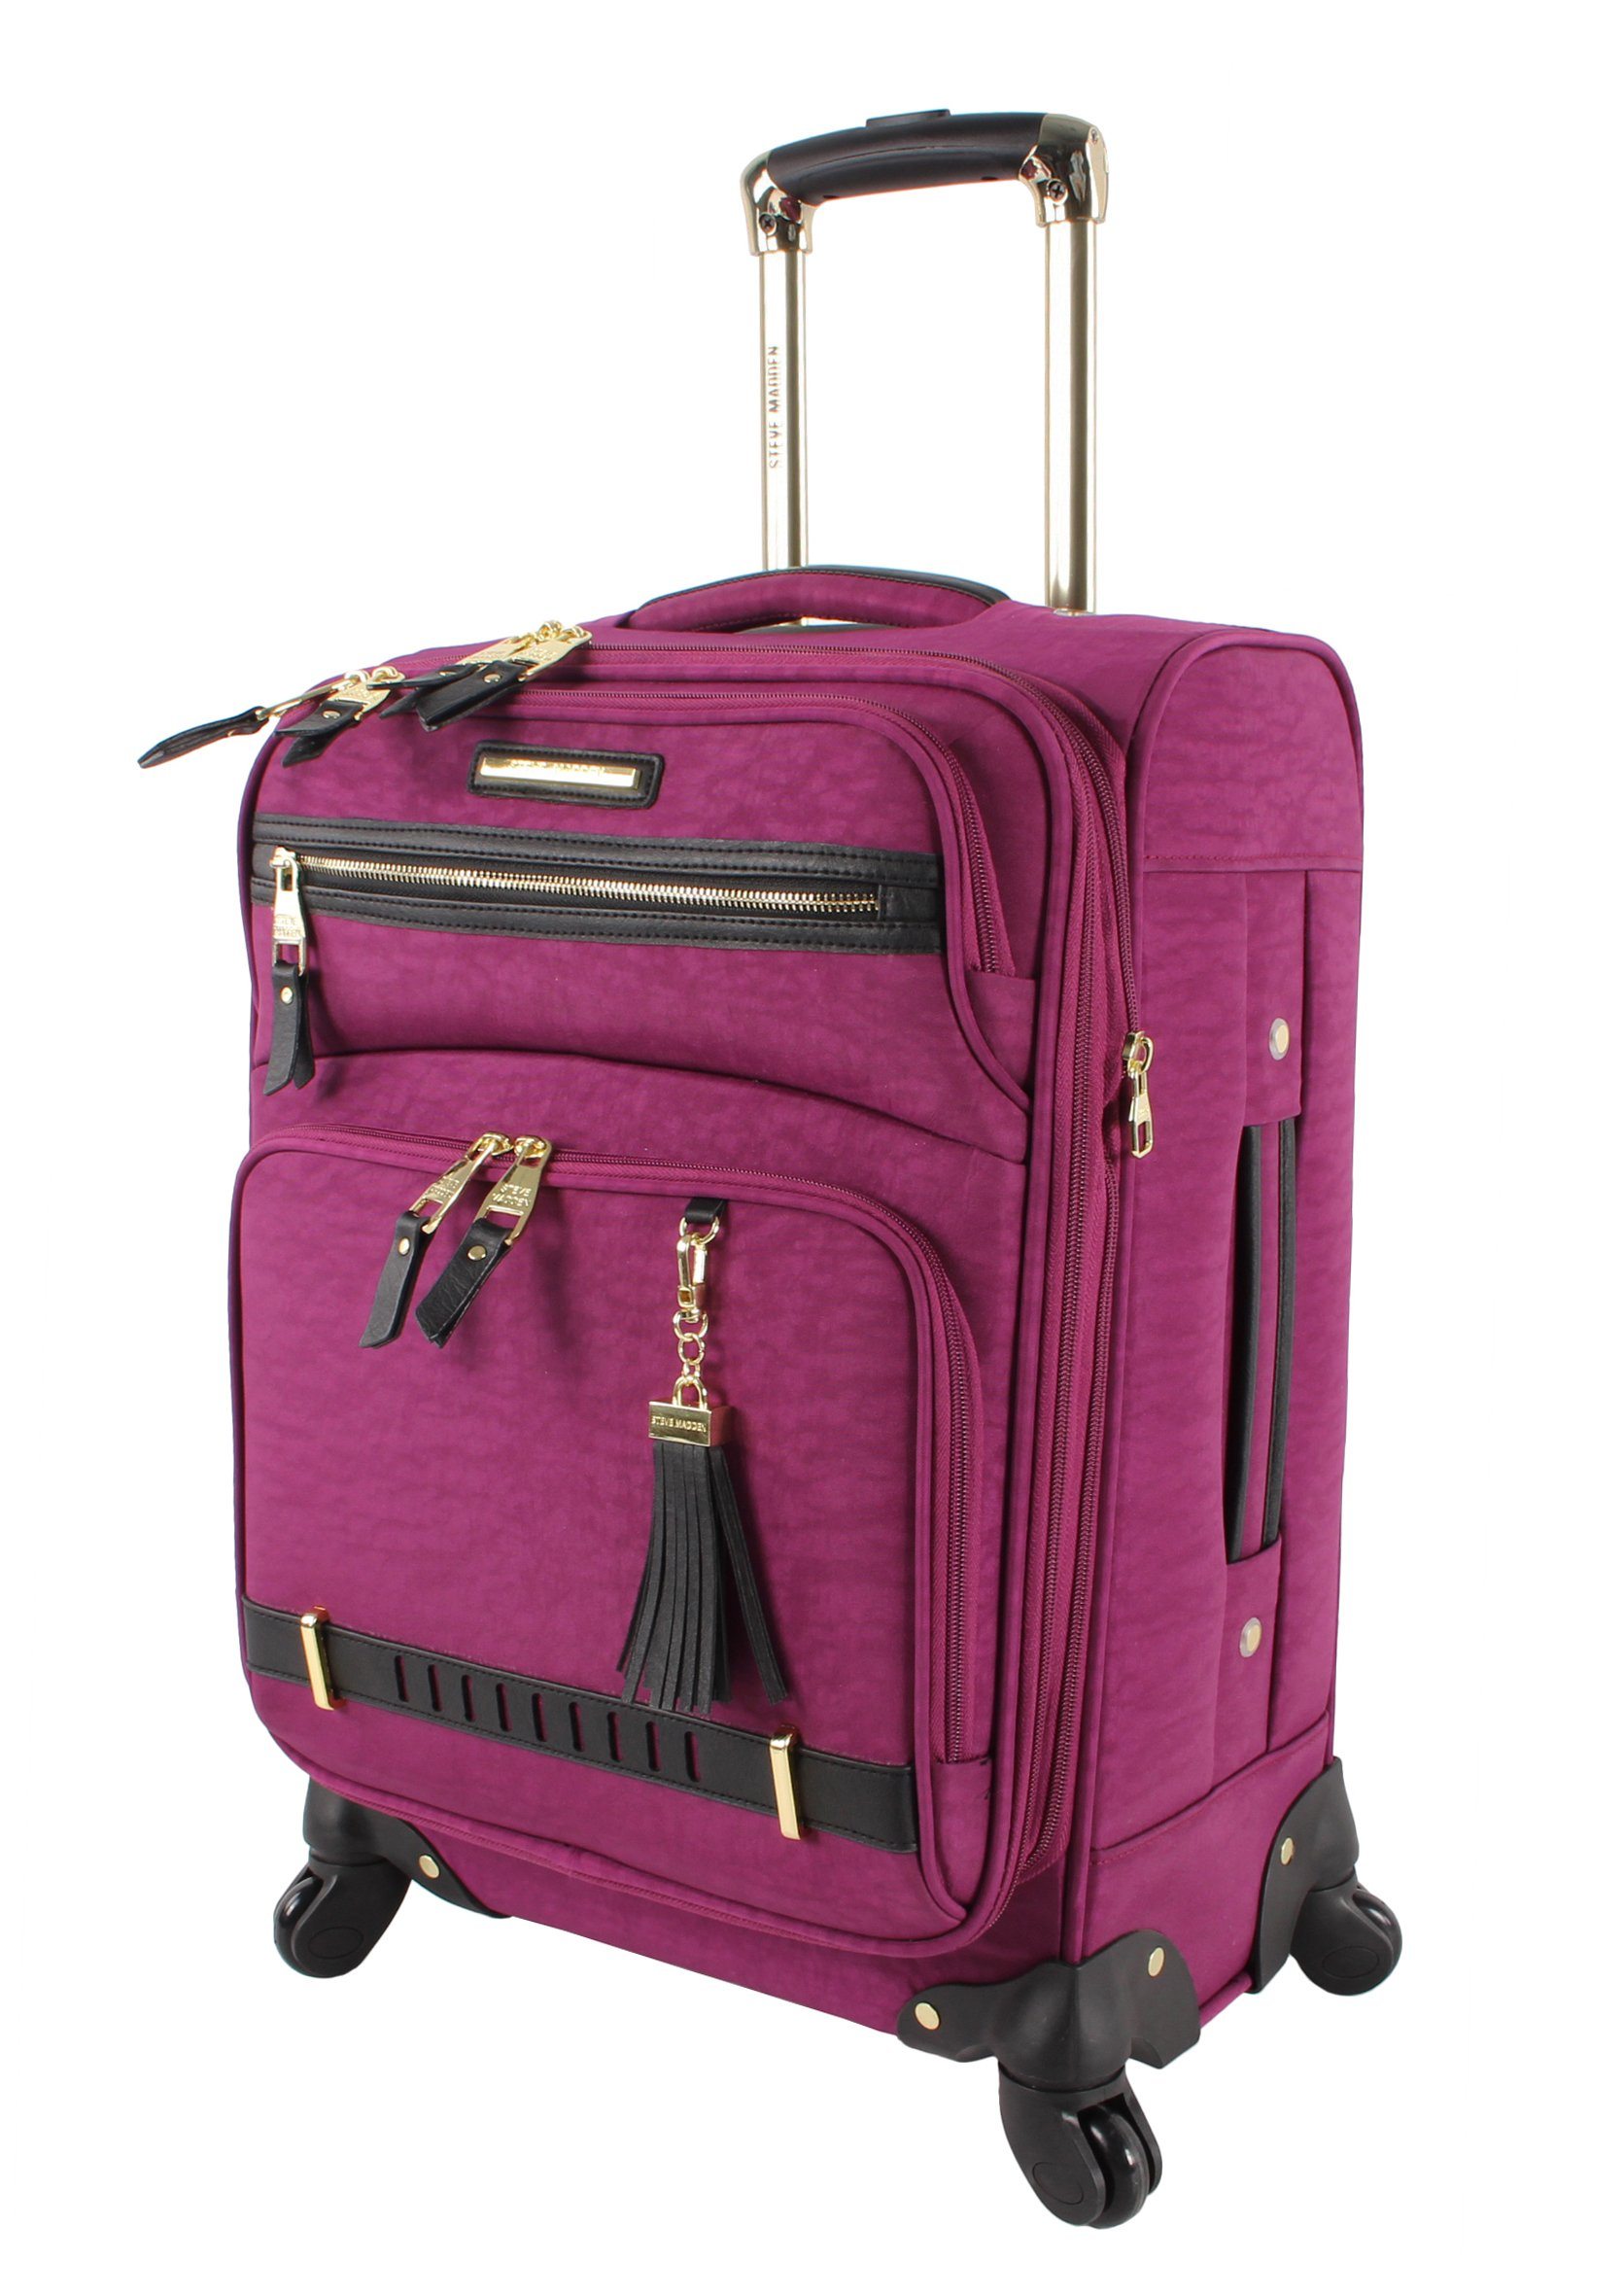 Steve Madden Luggage Large 28'' Expandable Softside Suitcase With Spinner Wheels (28in, Peek-A-Boo Purple)